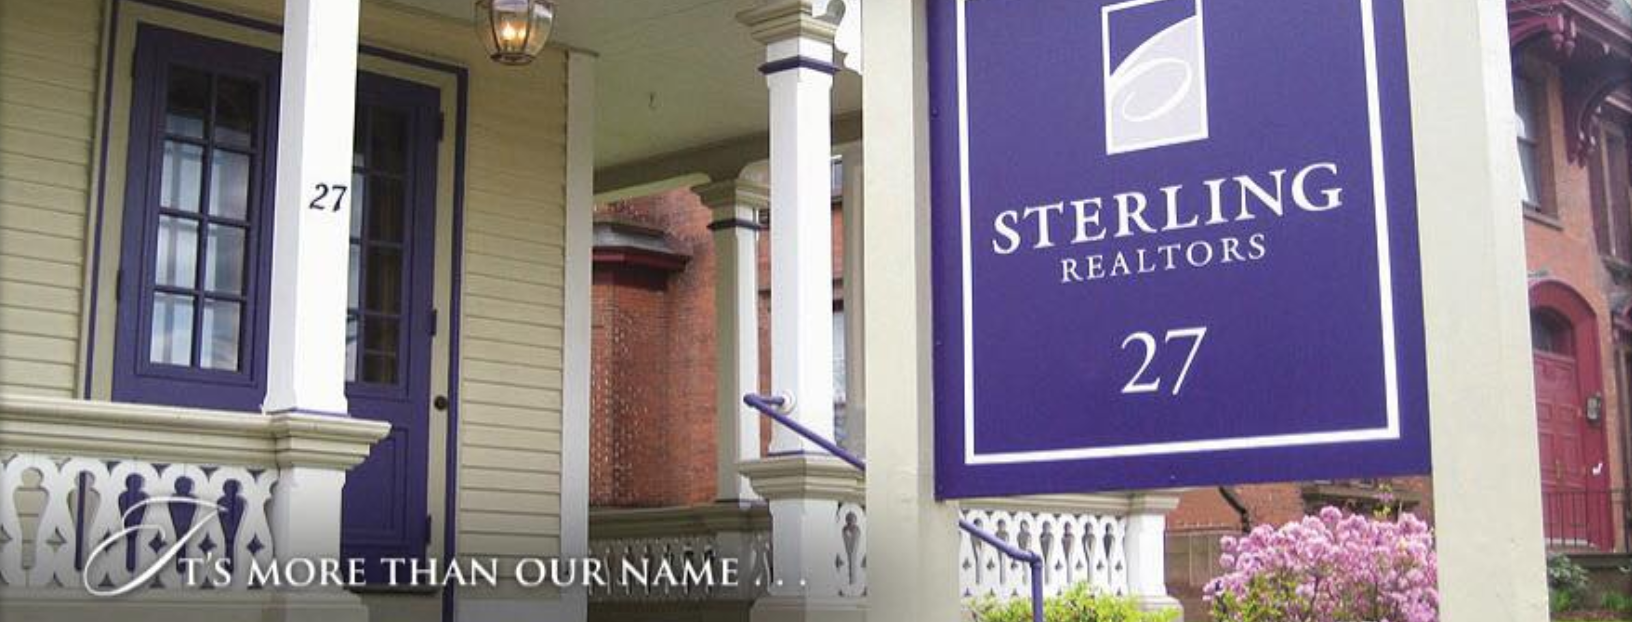 Sterling Realtors, Connecticut Real Estate - real estate cover photos - tips from the pros